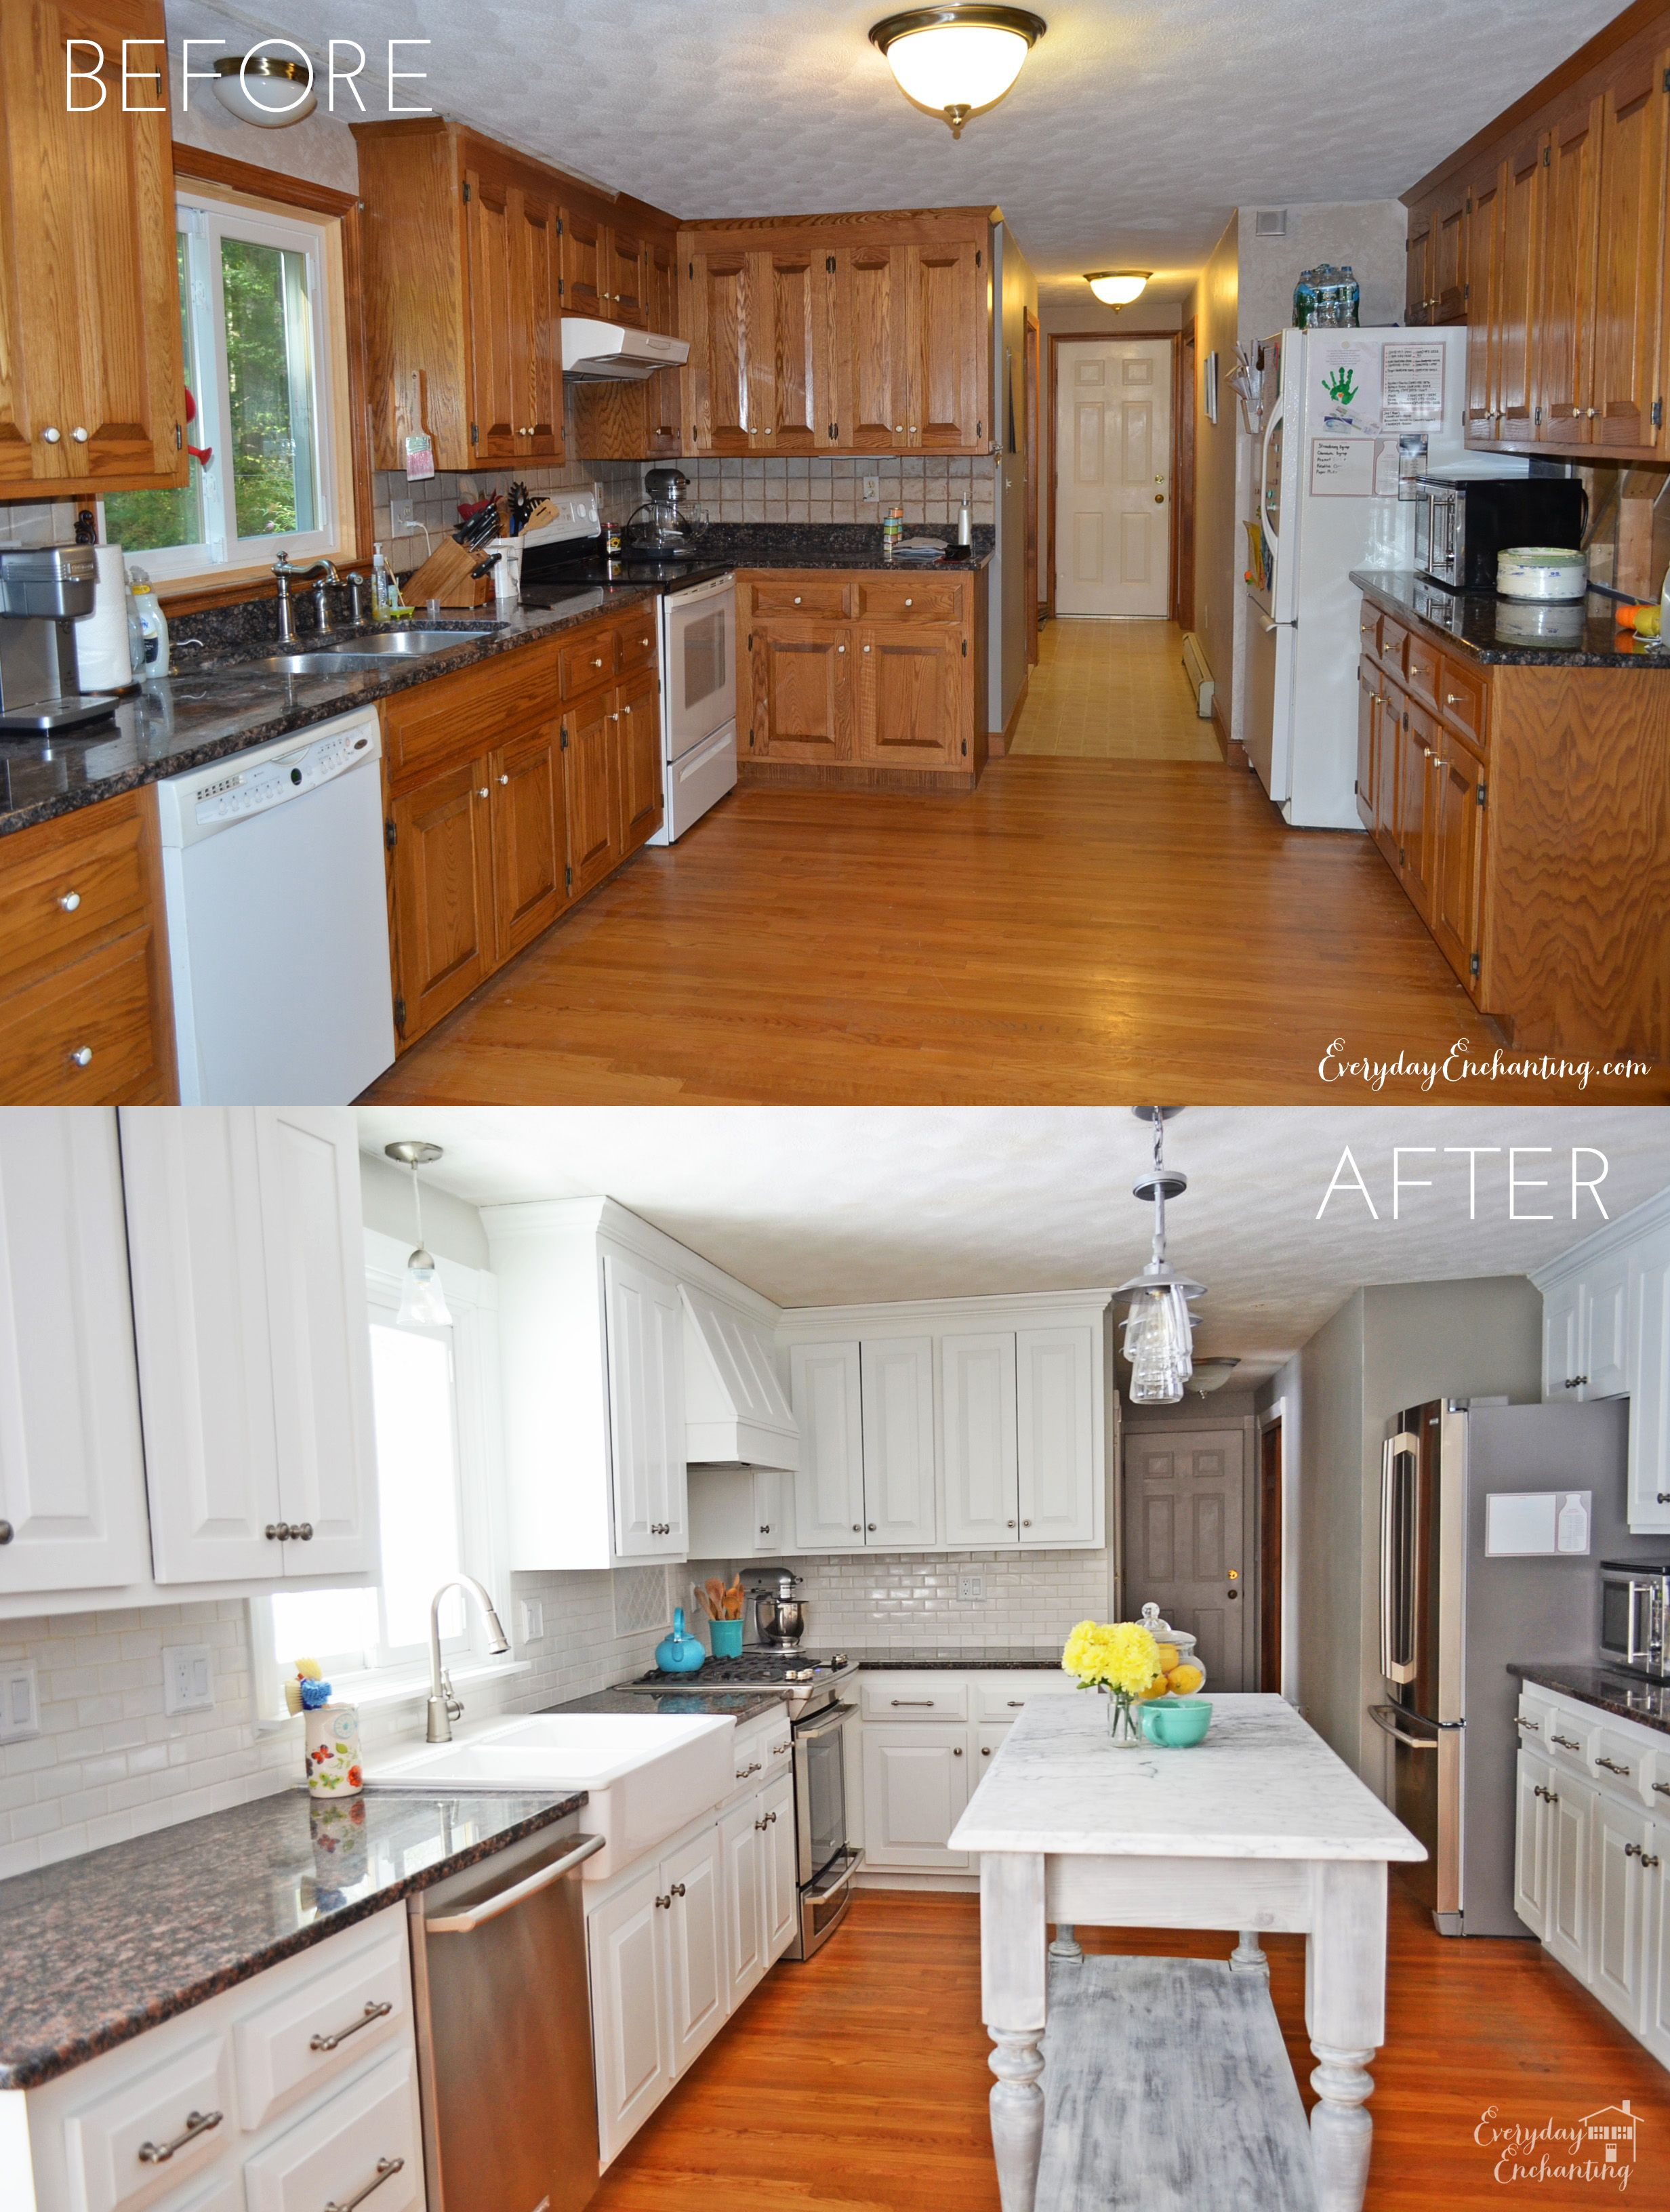 Best Kitchen Gallery: Diy White Painted Kitchen Cabi S Reveal Bright Painted Oak of Kitchen Makeovers With Oak Cabinets on cal-ite.com